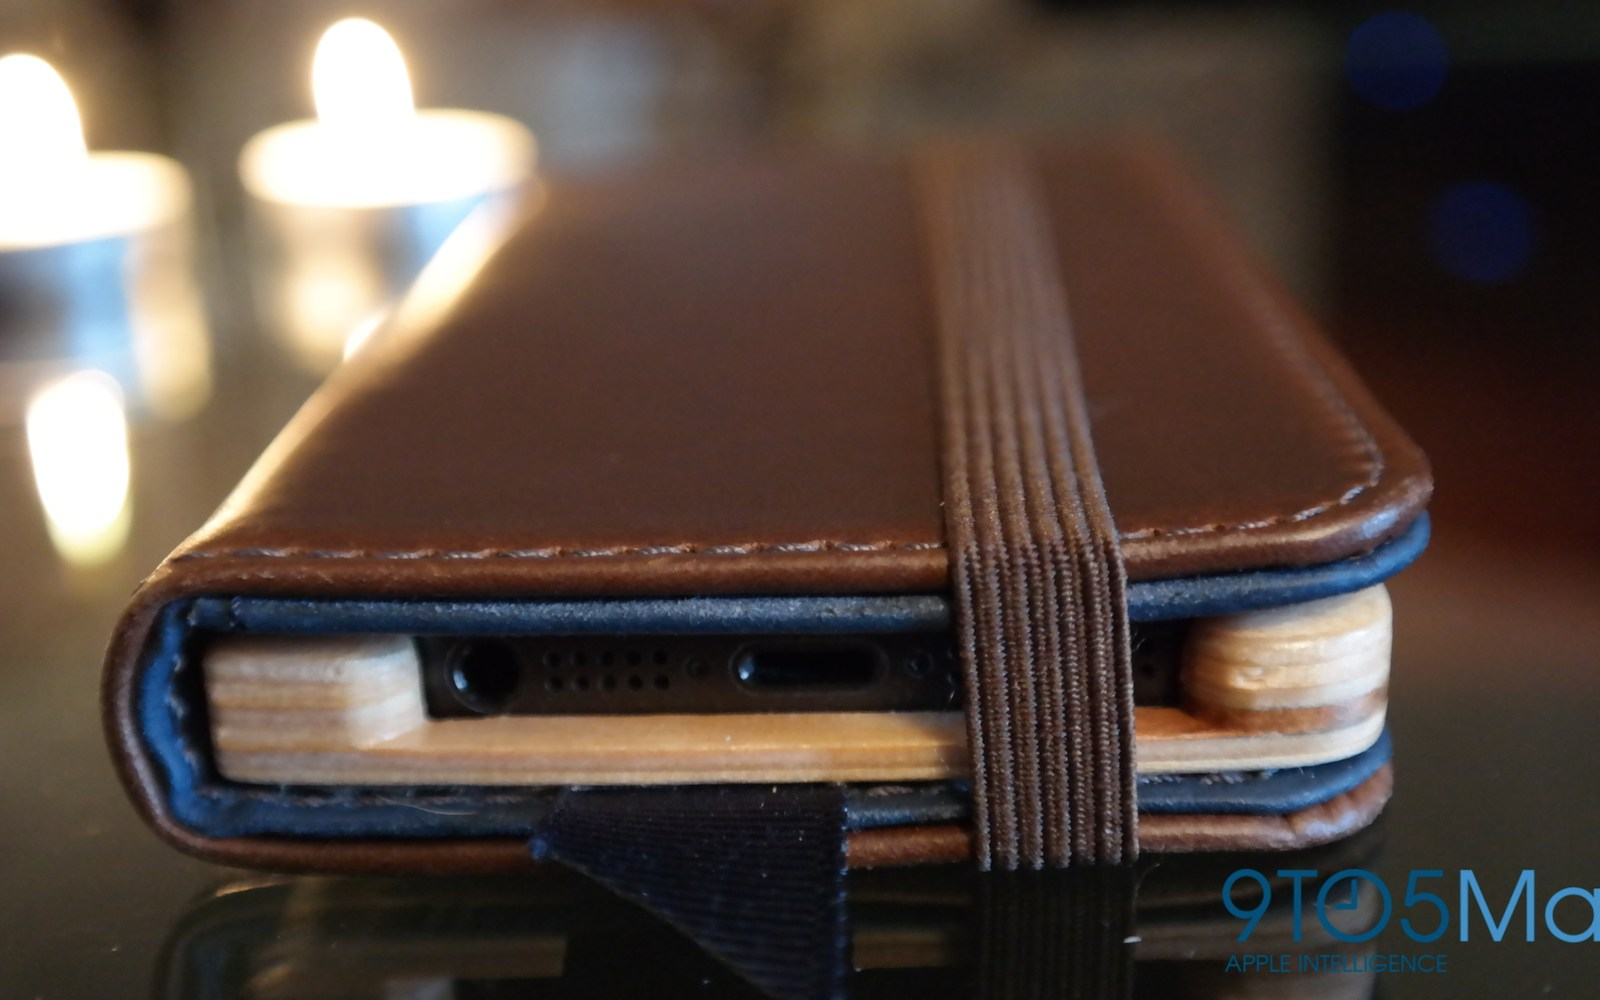 Review: The nicest iPhone case I've ever used — Pad & Quill's leather Luxury Pocket Book